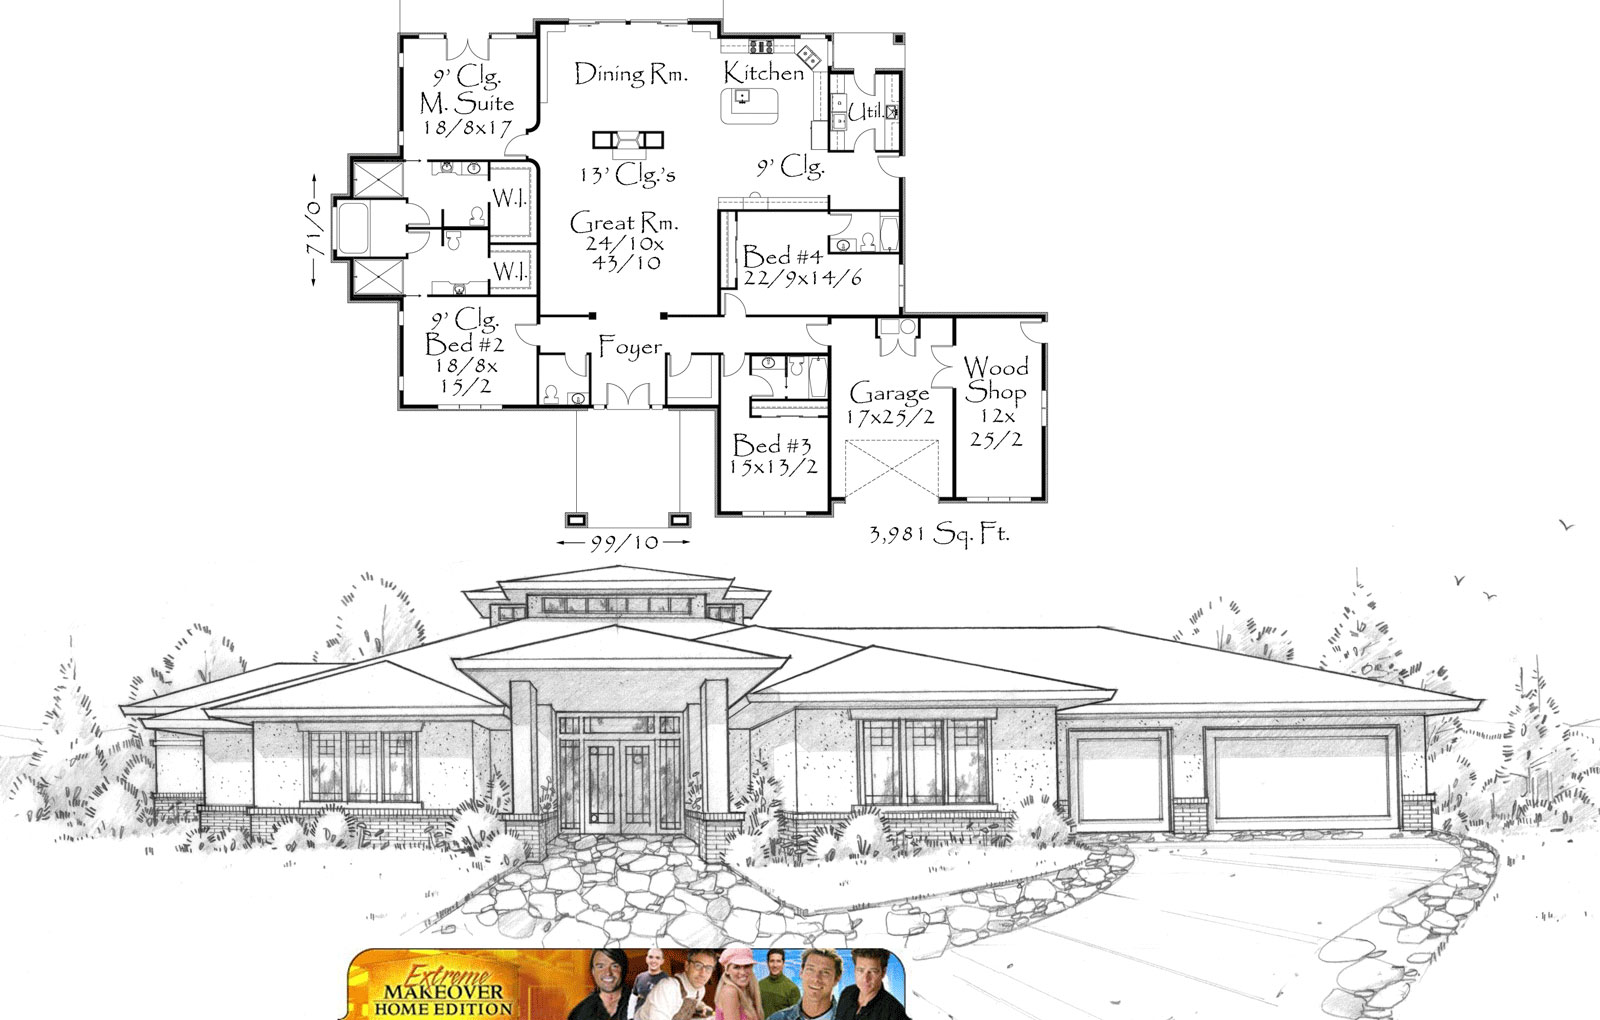 Mark Stewart Home Design Designs First Custom Home for ABC\'s Extreme ...